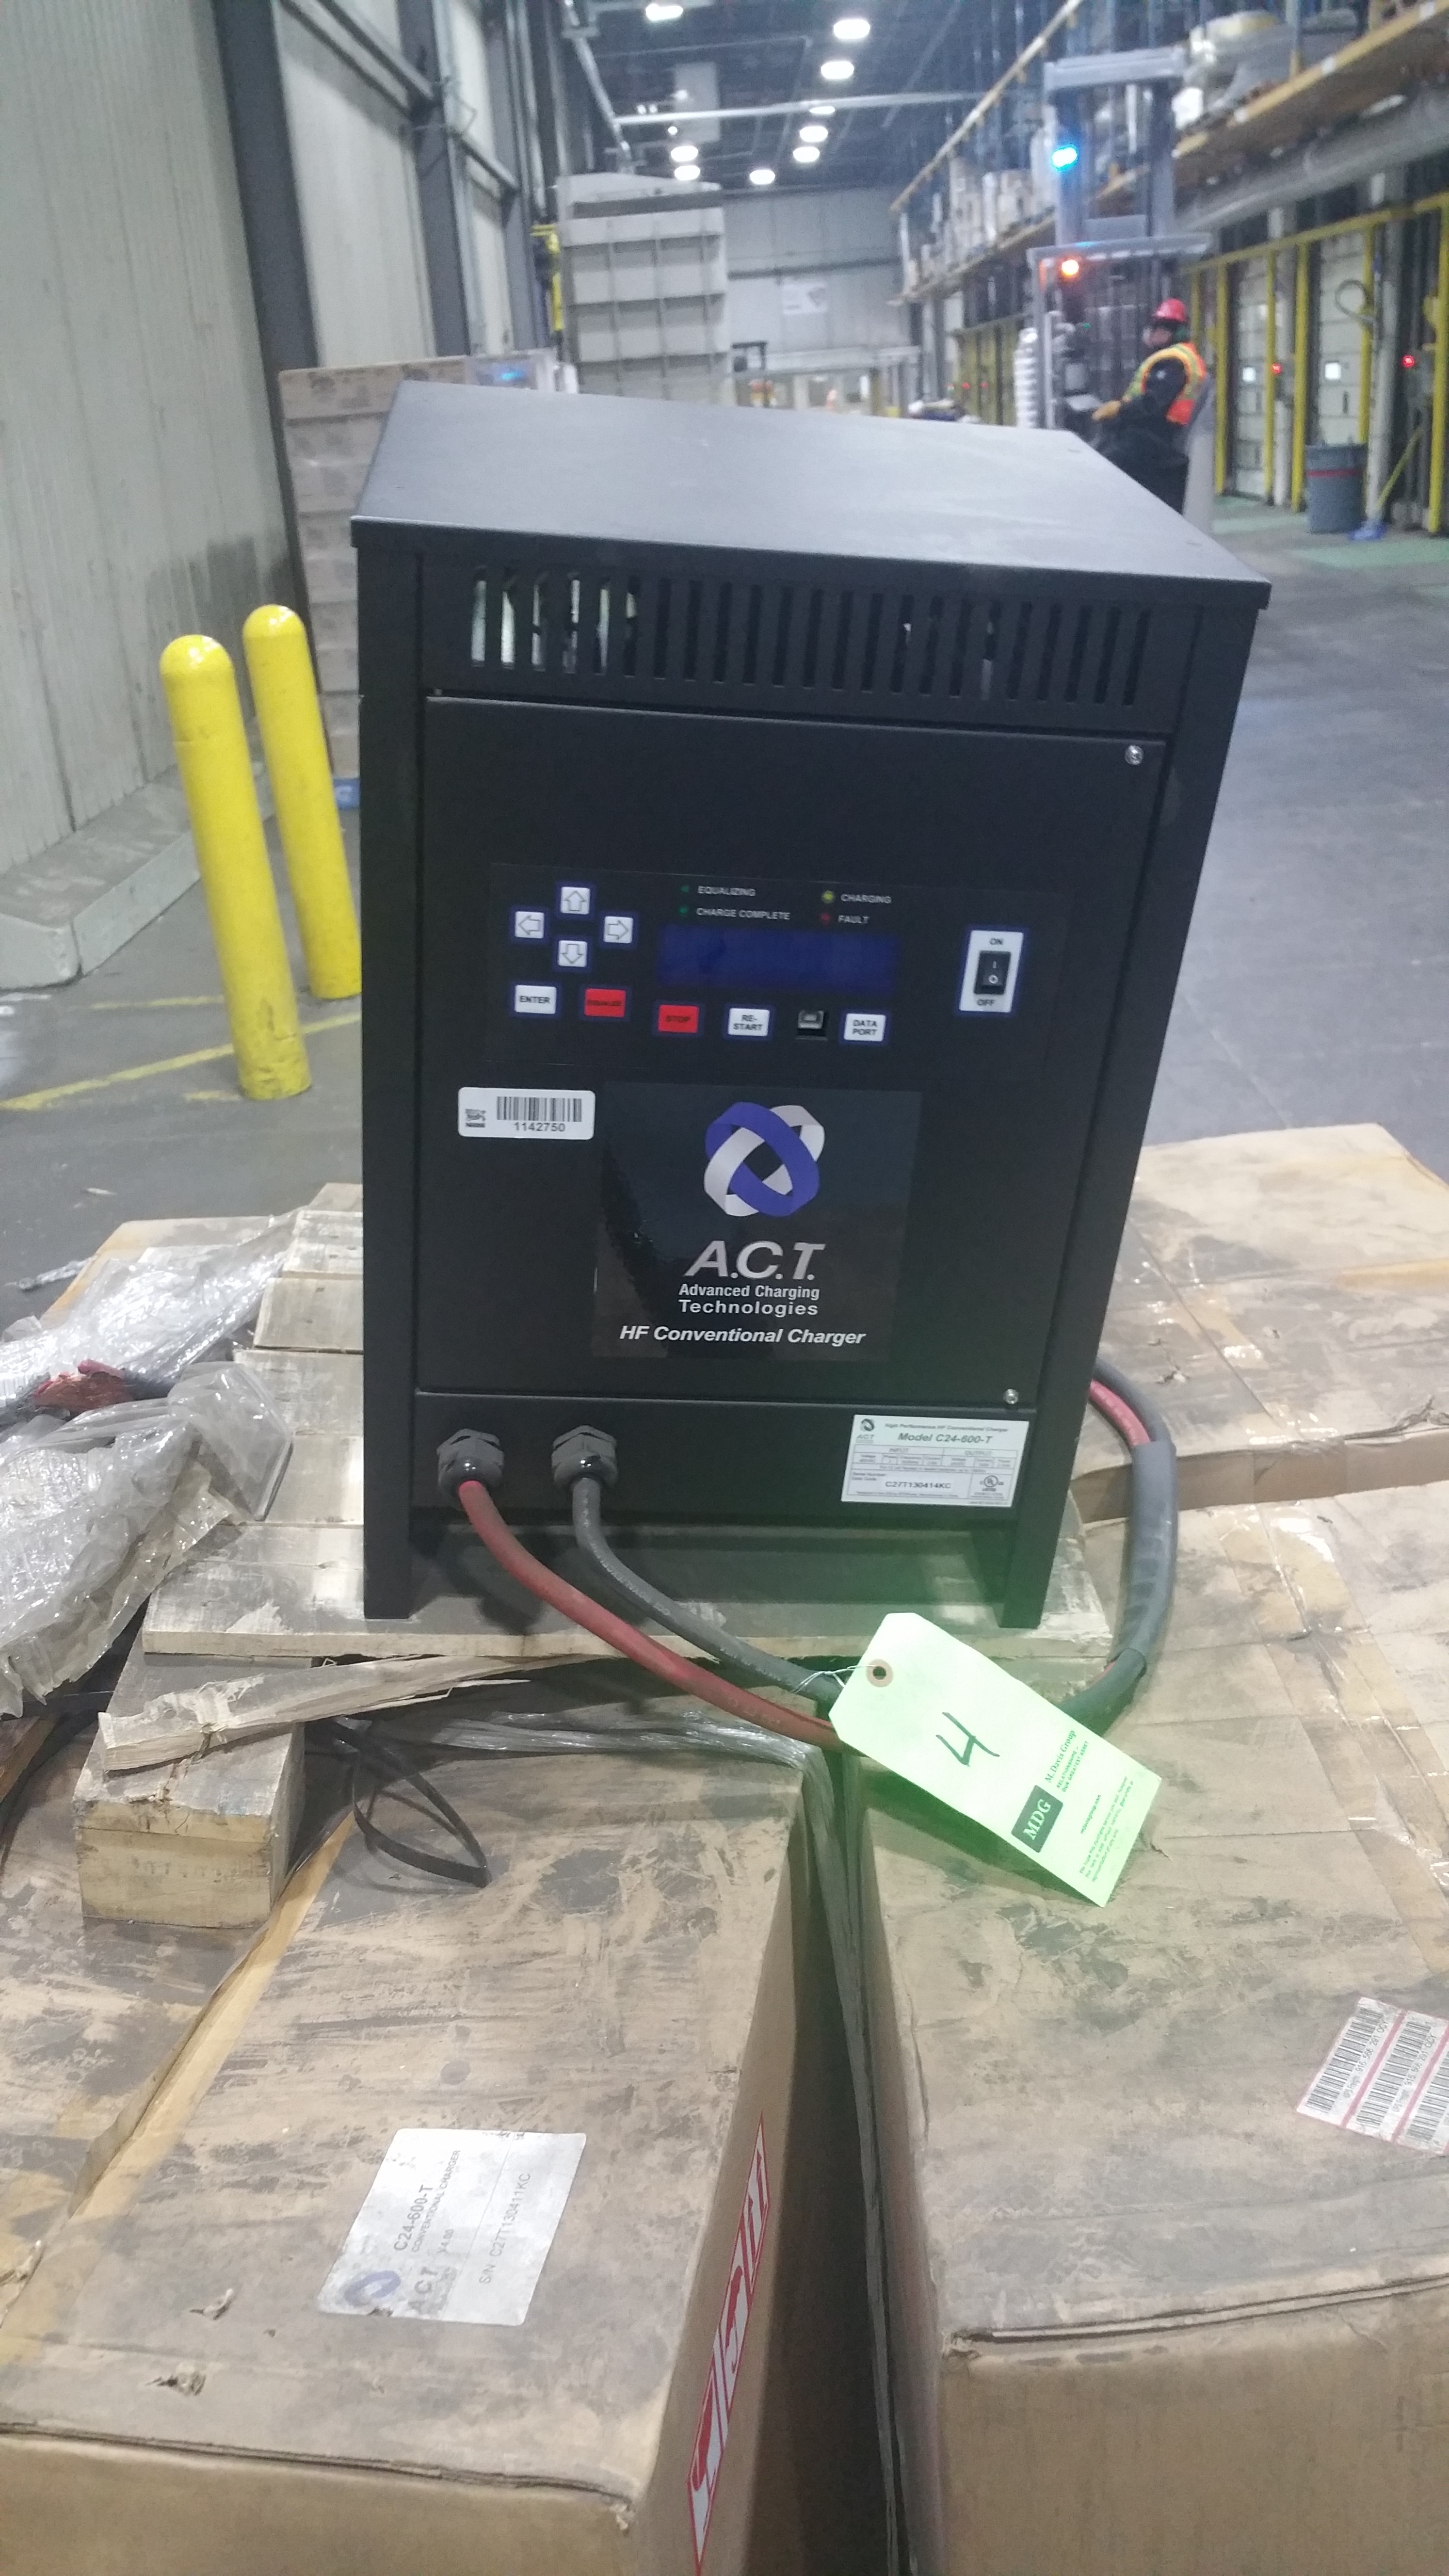 Lot 29 - NEW ACT 24 600T 24V Battery Charger Tagged Lot 4 (Located in Indiana)